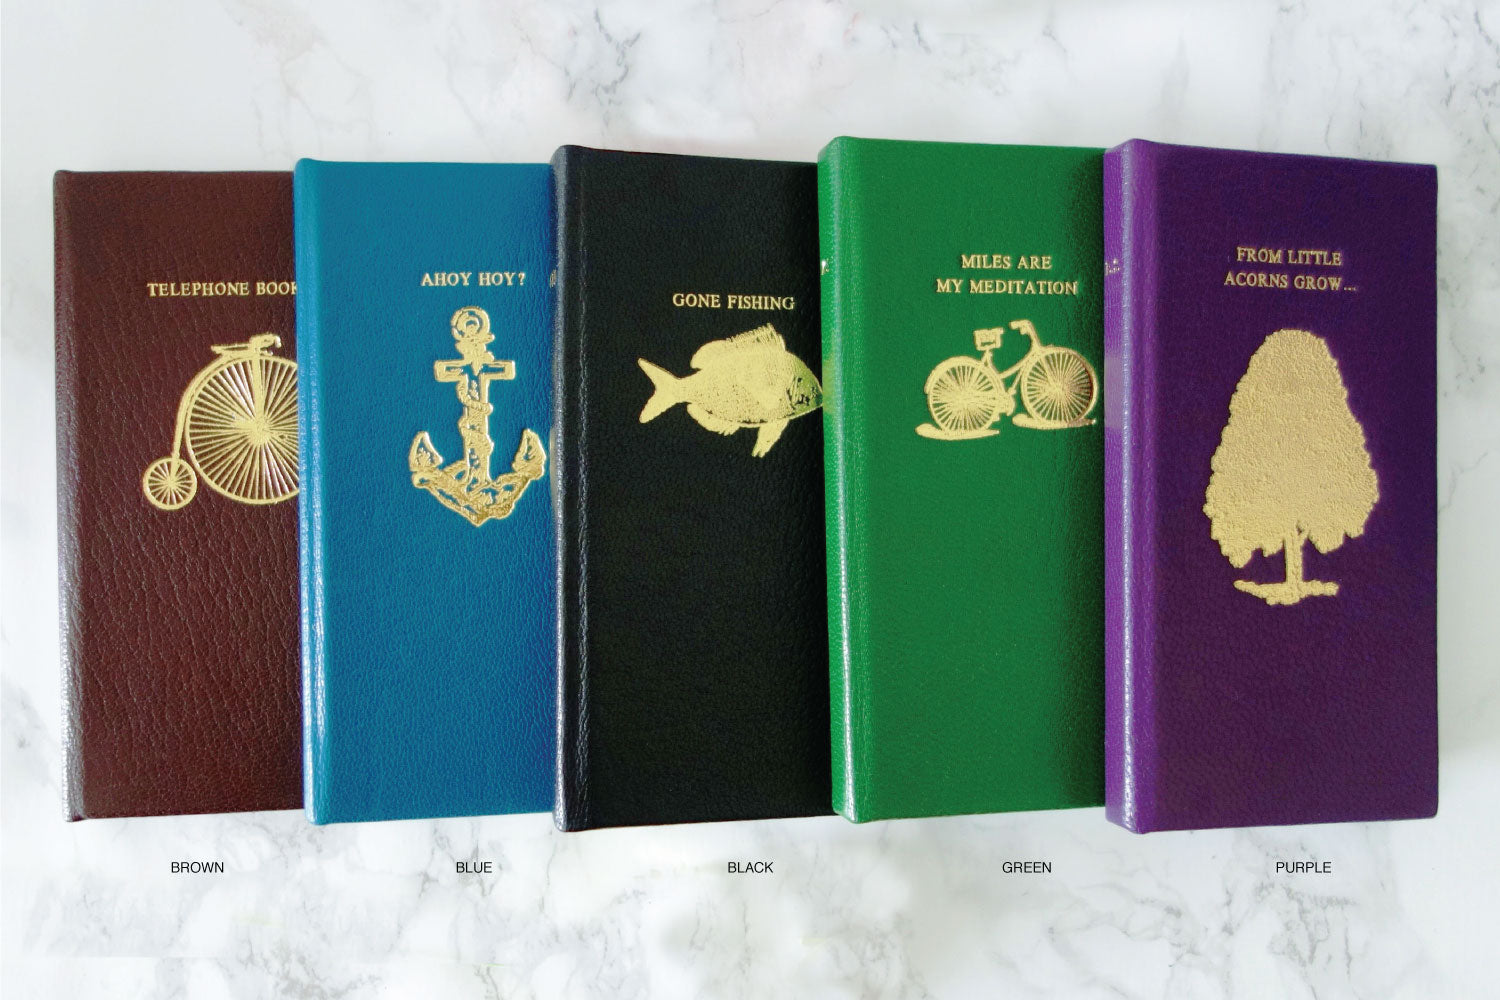 Custom leather phone cases from Bookshell in brown leather, blue leather, black leather, green leather, purple leather